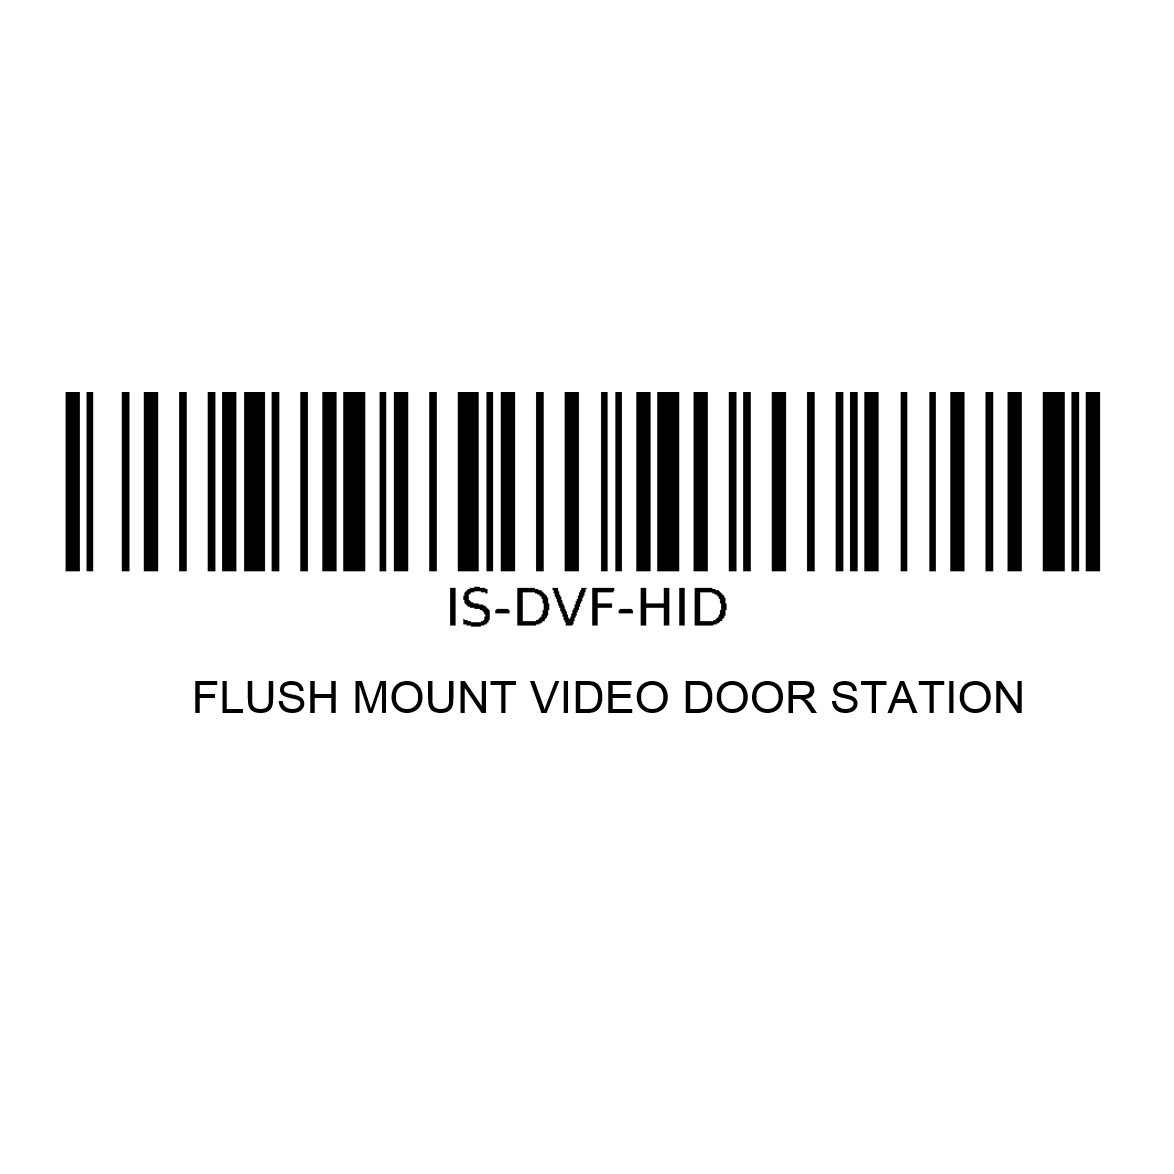 Aiphone IS-DVF-HID | FL VIDEO DOOR STN W/ HID PROX